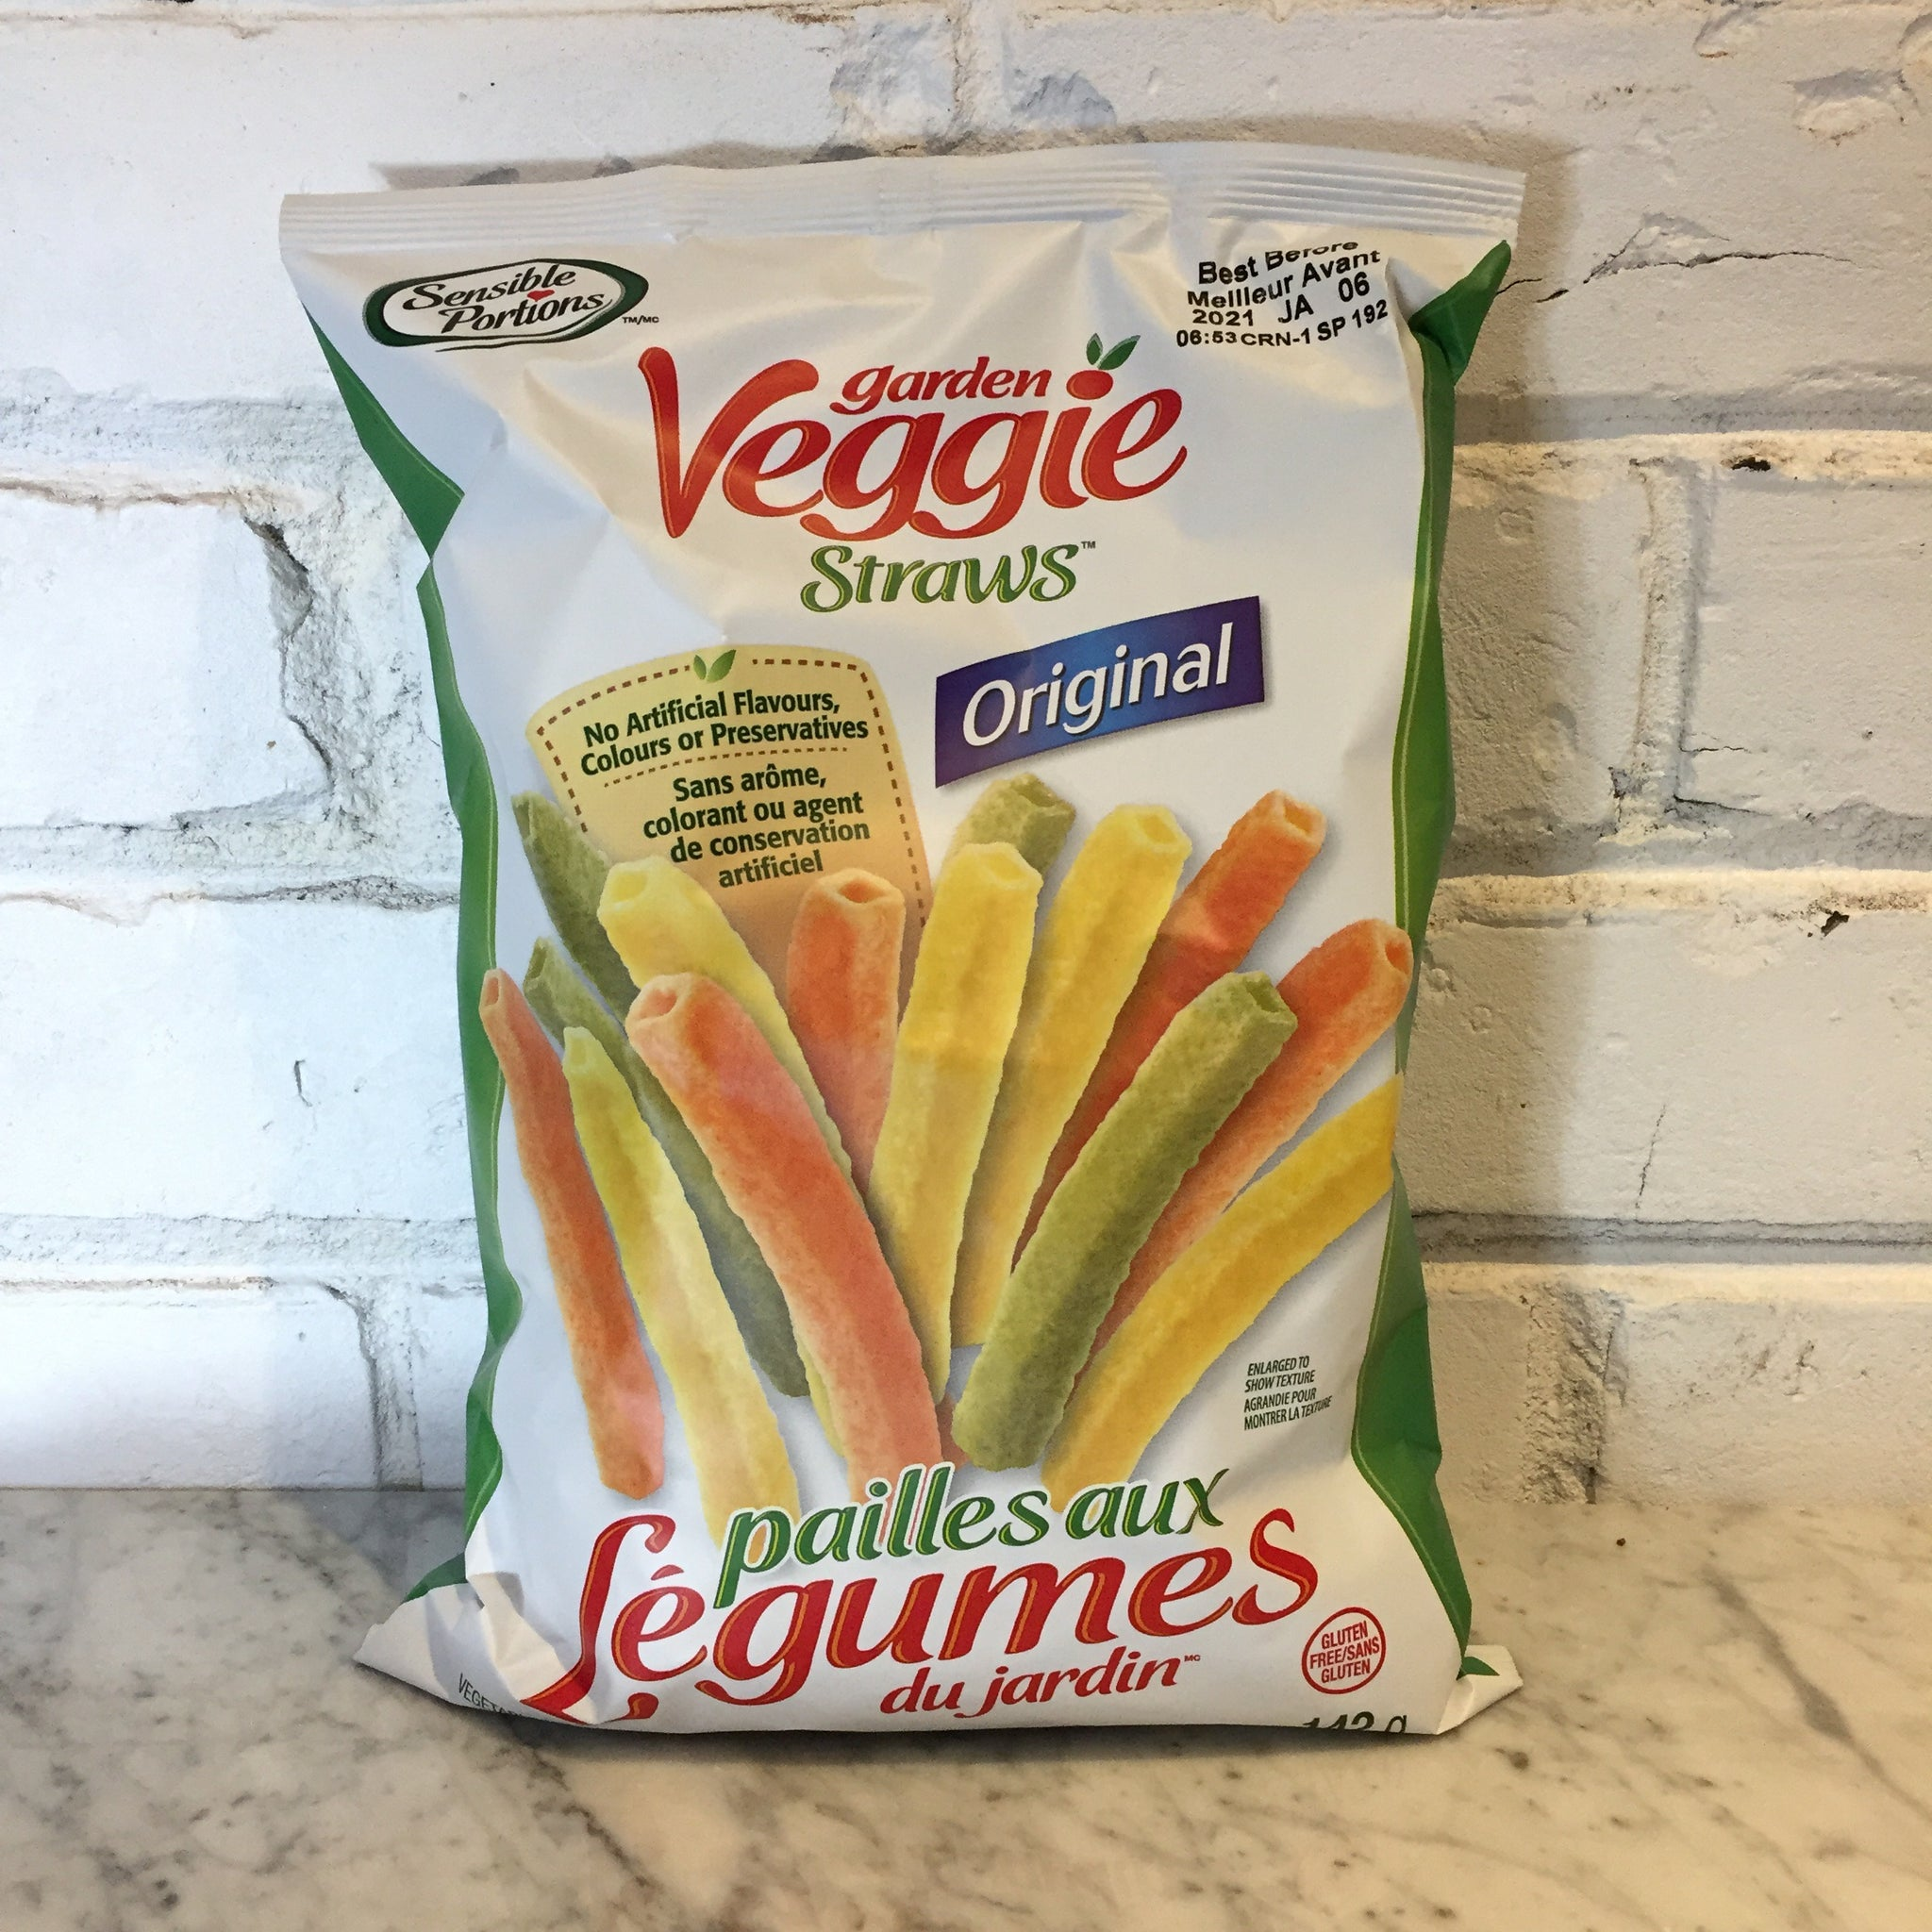 Sensible Portions Veggie Straws